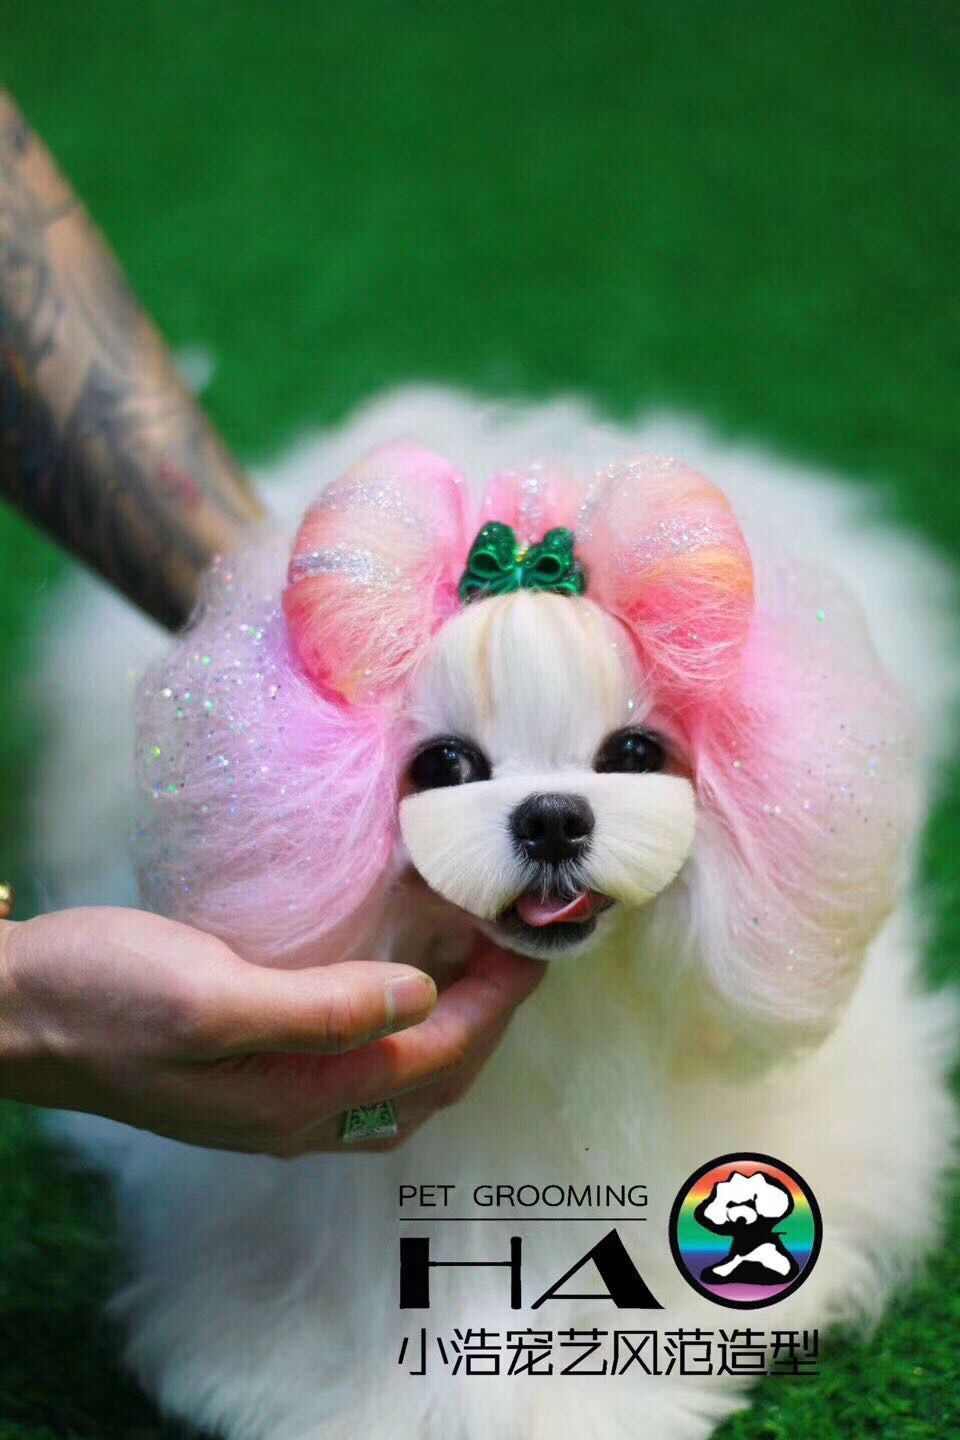 What A Day With This Adorable Grooming Work Done By Hao Pet